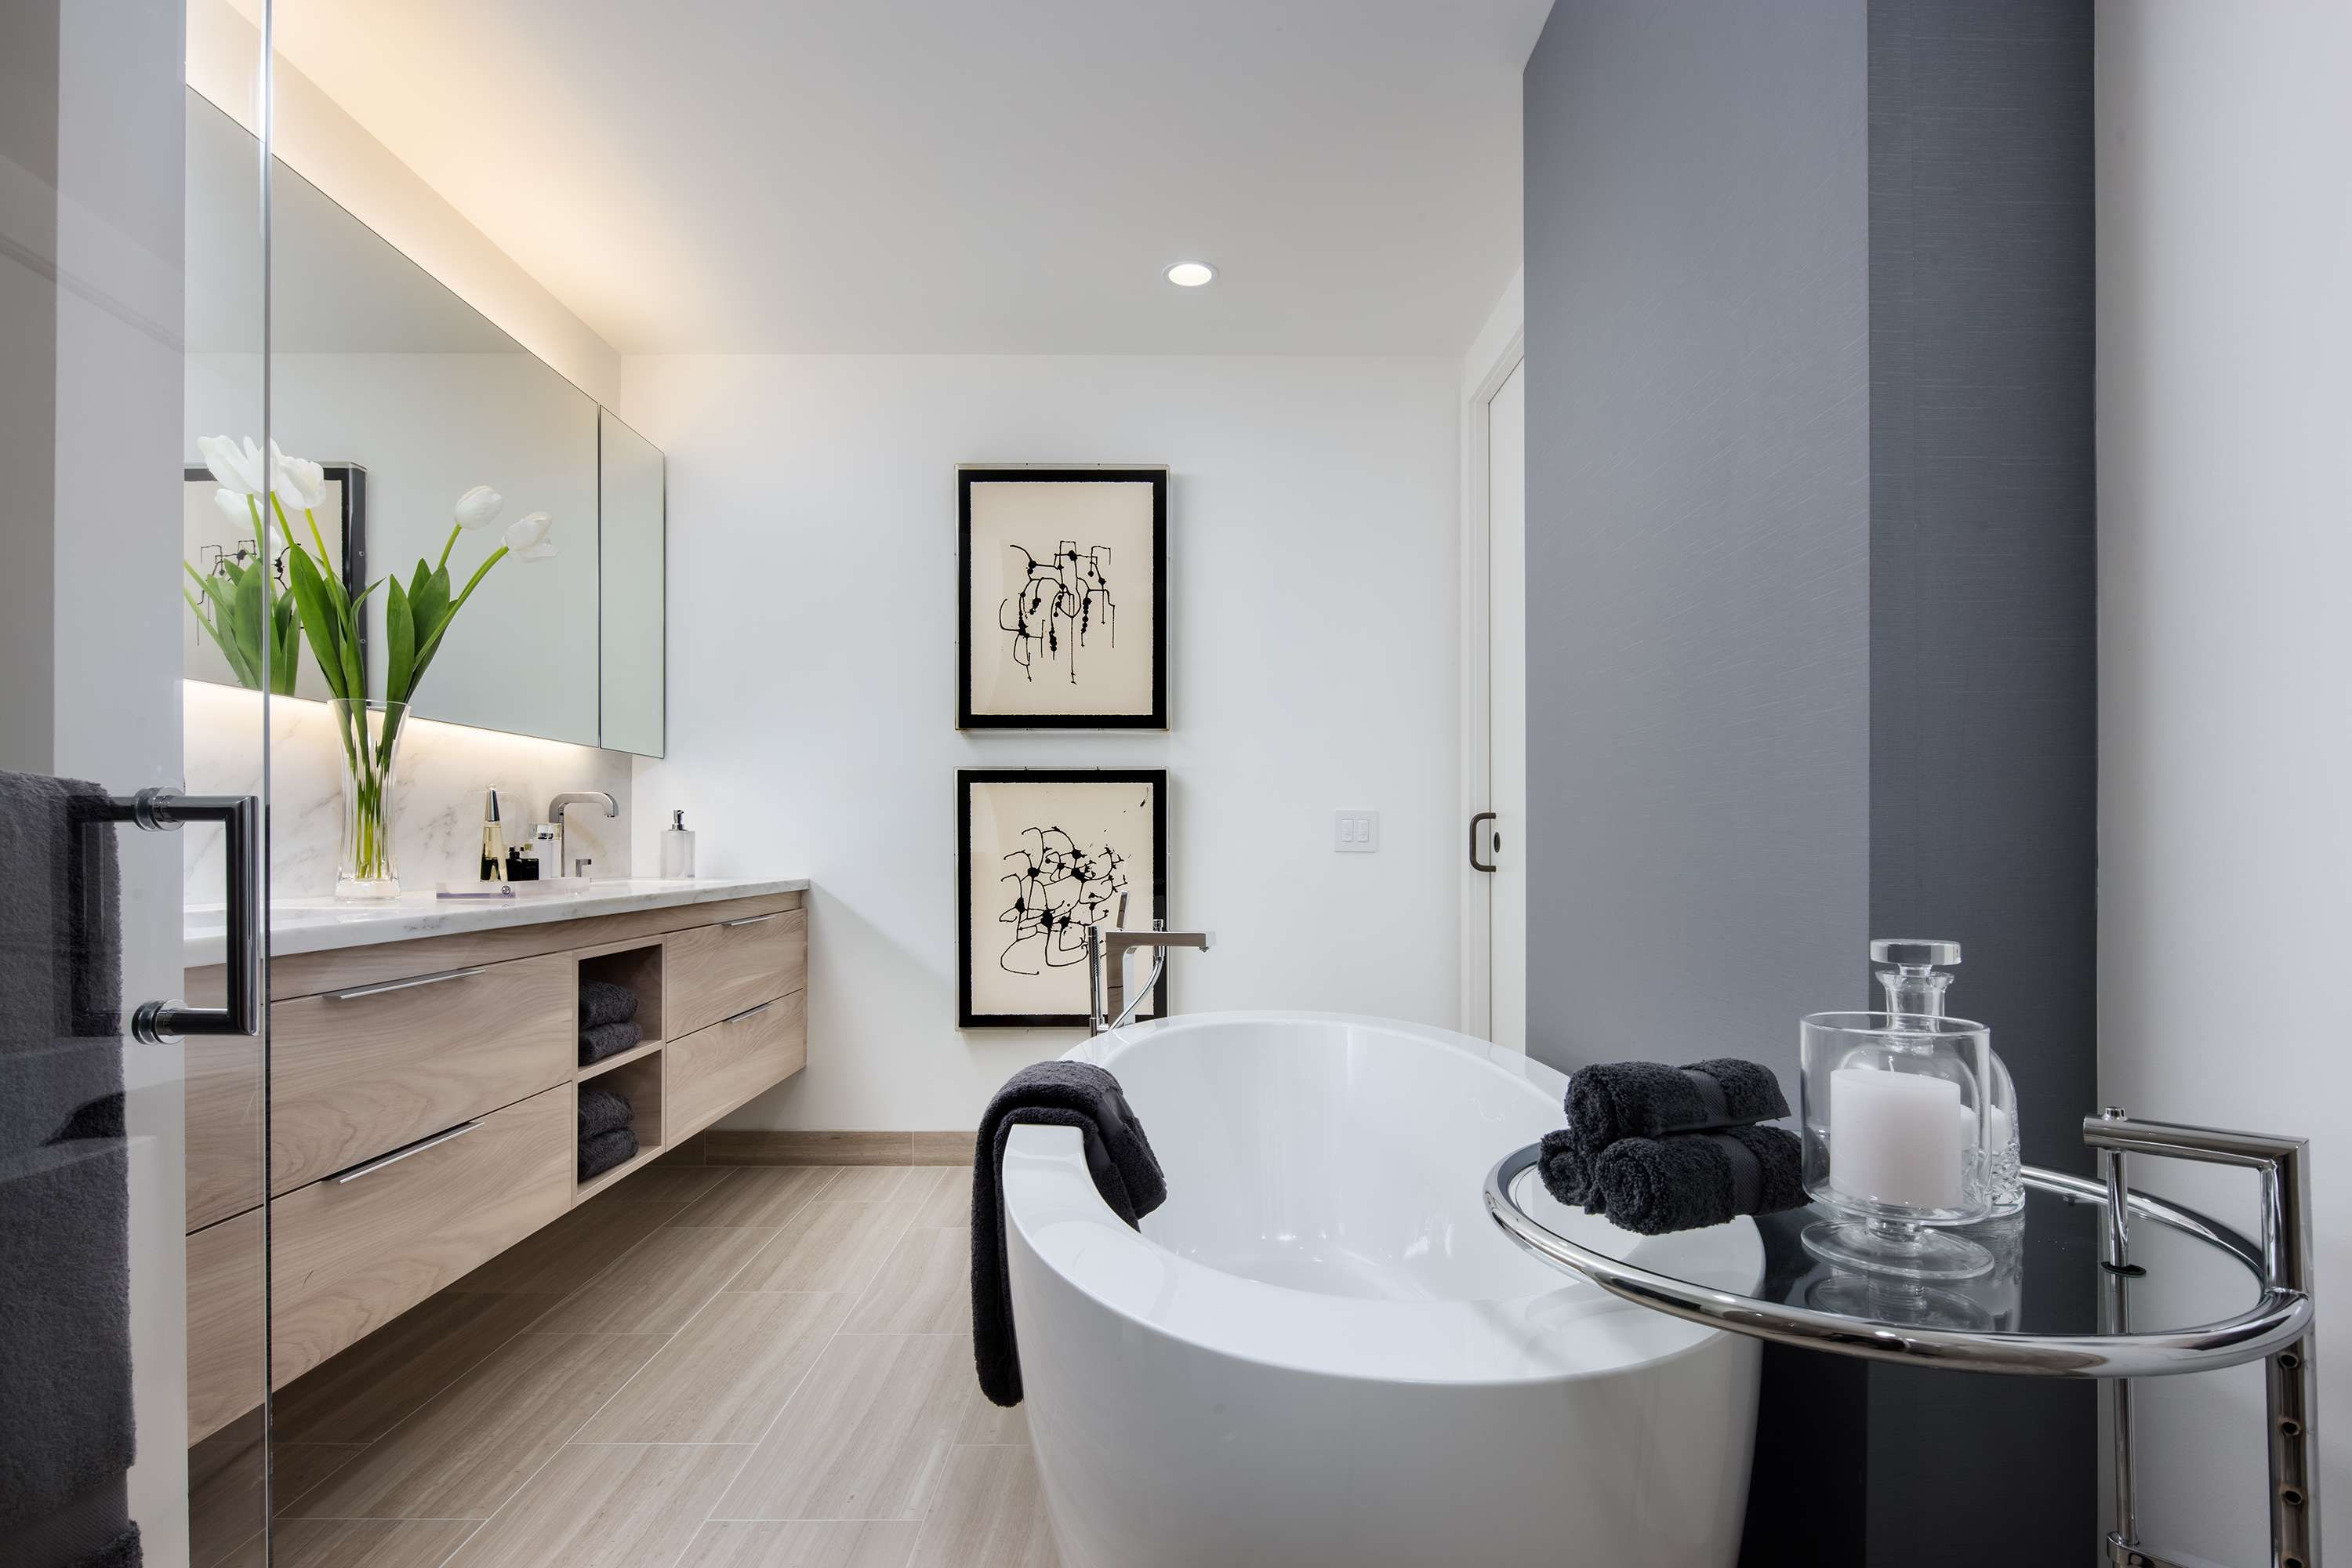 Awesome Nice Apartment Bathrooms Ideas For You Like The Remainder Of The Trendy Apartment The B Apartment Bathroom Apartment Bathroom Design Cool Apartments